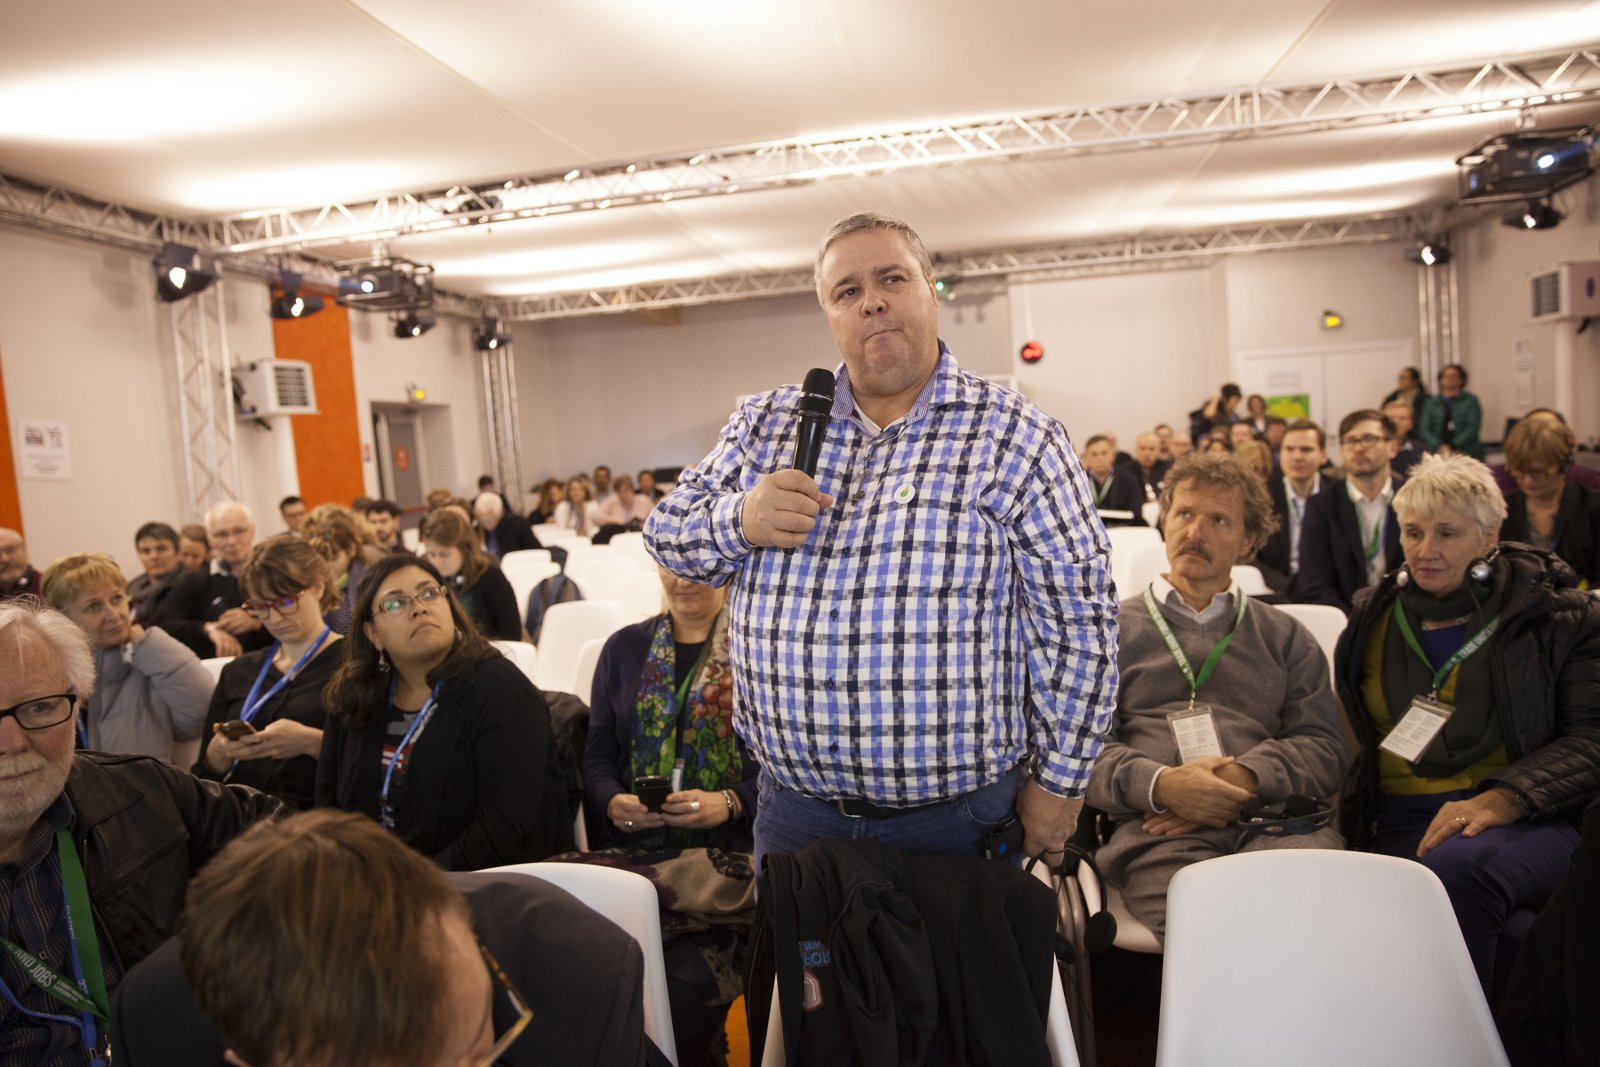 """Suncor oil sands mechanic Ken Smith speaks to """"One Million Climate Jobs"""" event at COP21 summit in Paris on Thursday. Source: the National Observer; photo by Mychaylo Prystupa"""